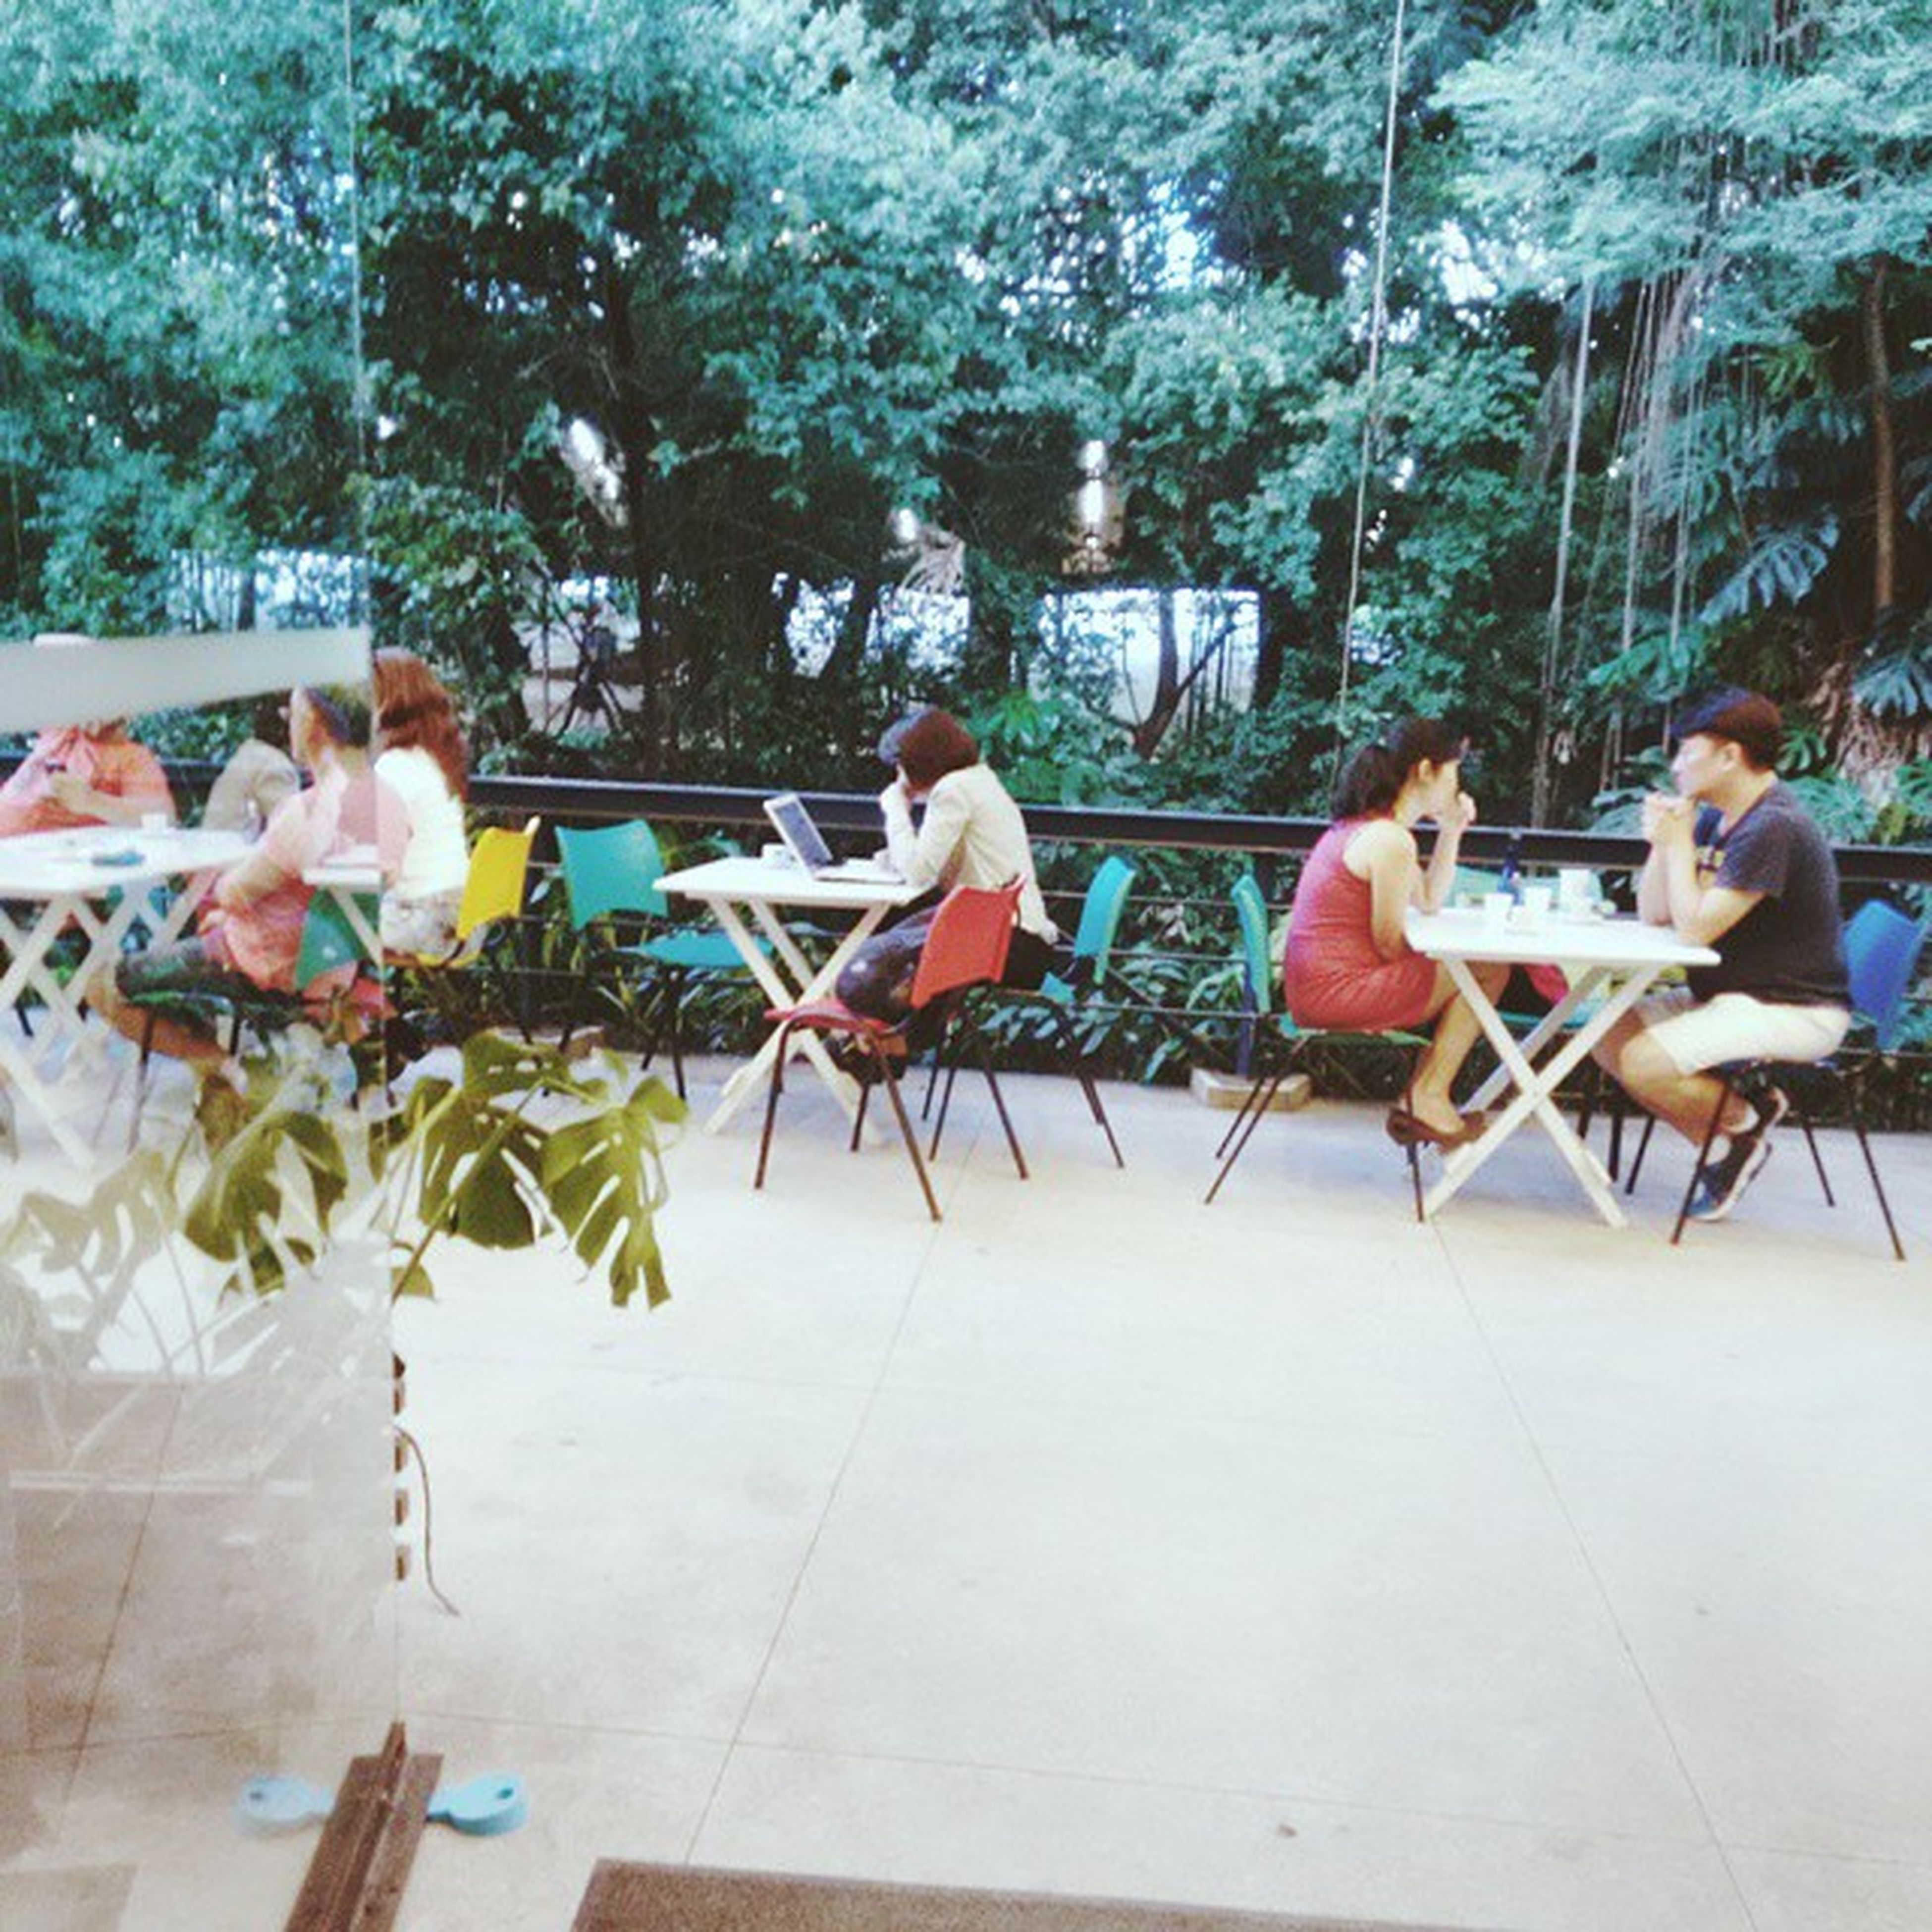 tree, chair, table, relaxation, sitting, leisure activity, lifestyles, person, day, restaurant, sunlight, outdoors, bench, incidental people, nature, men, seat, park - man made space